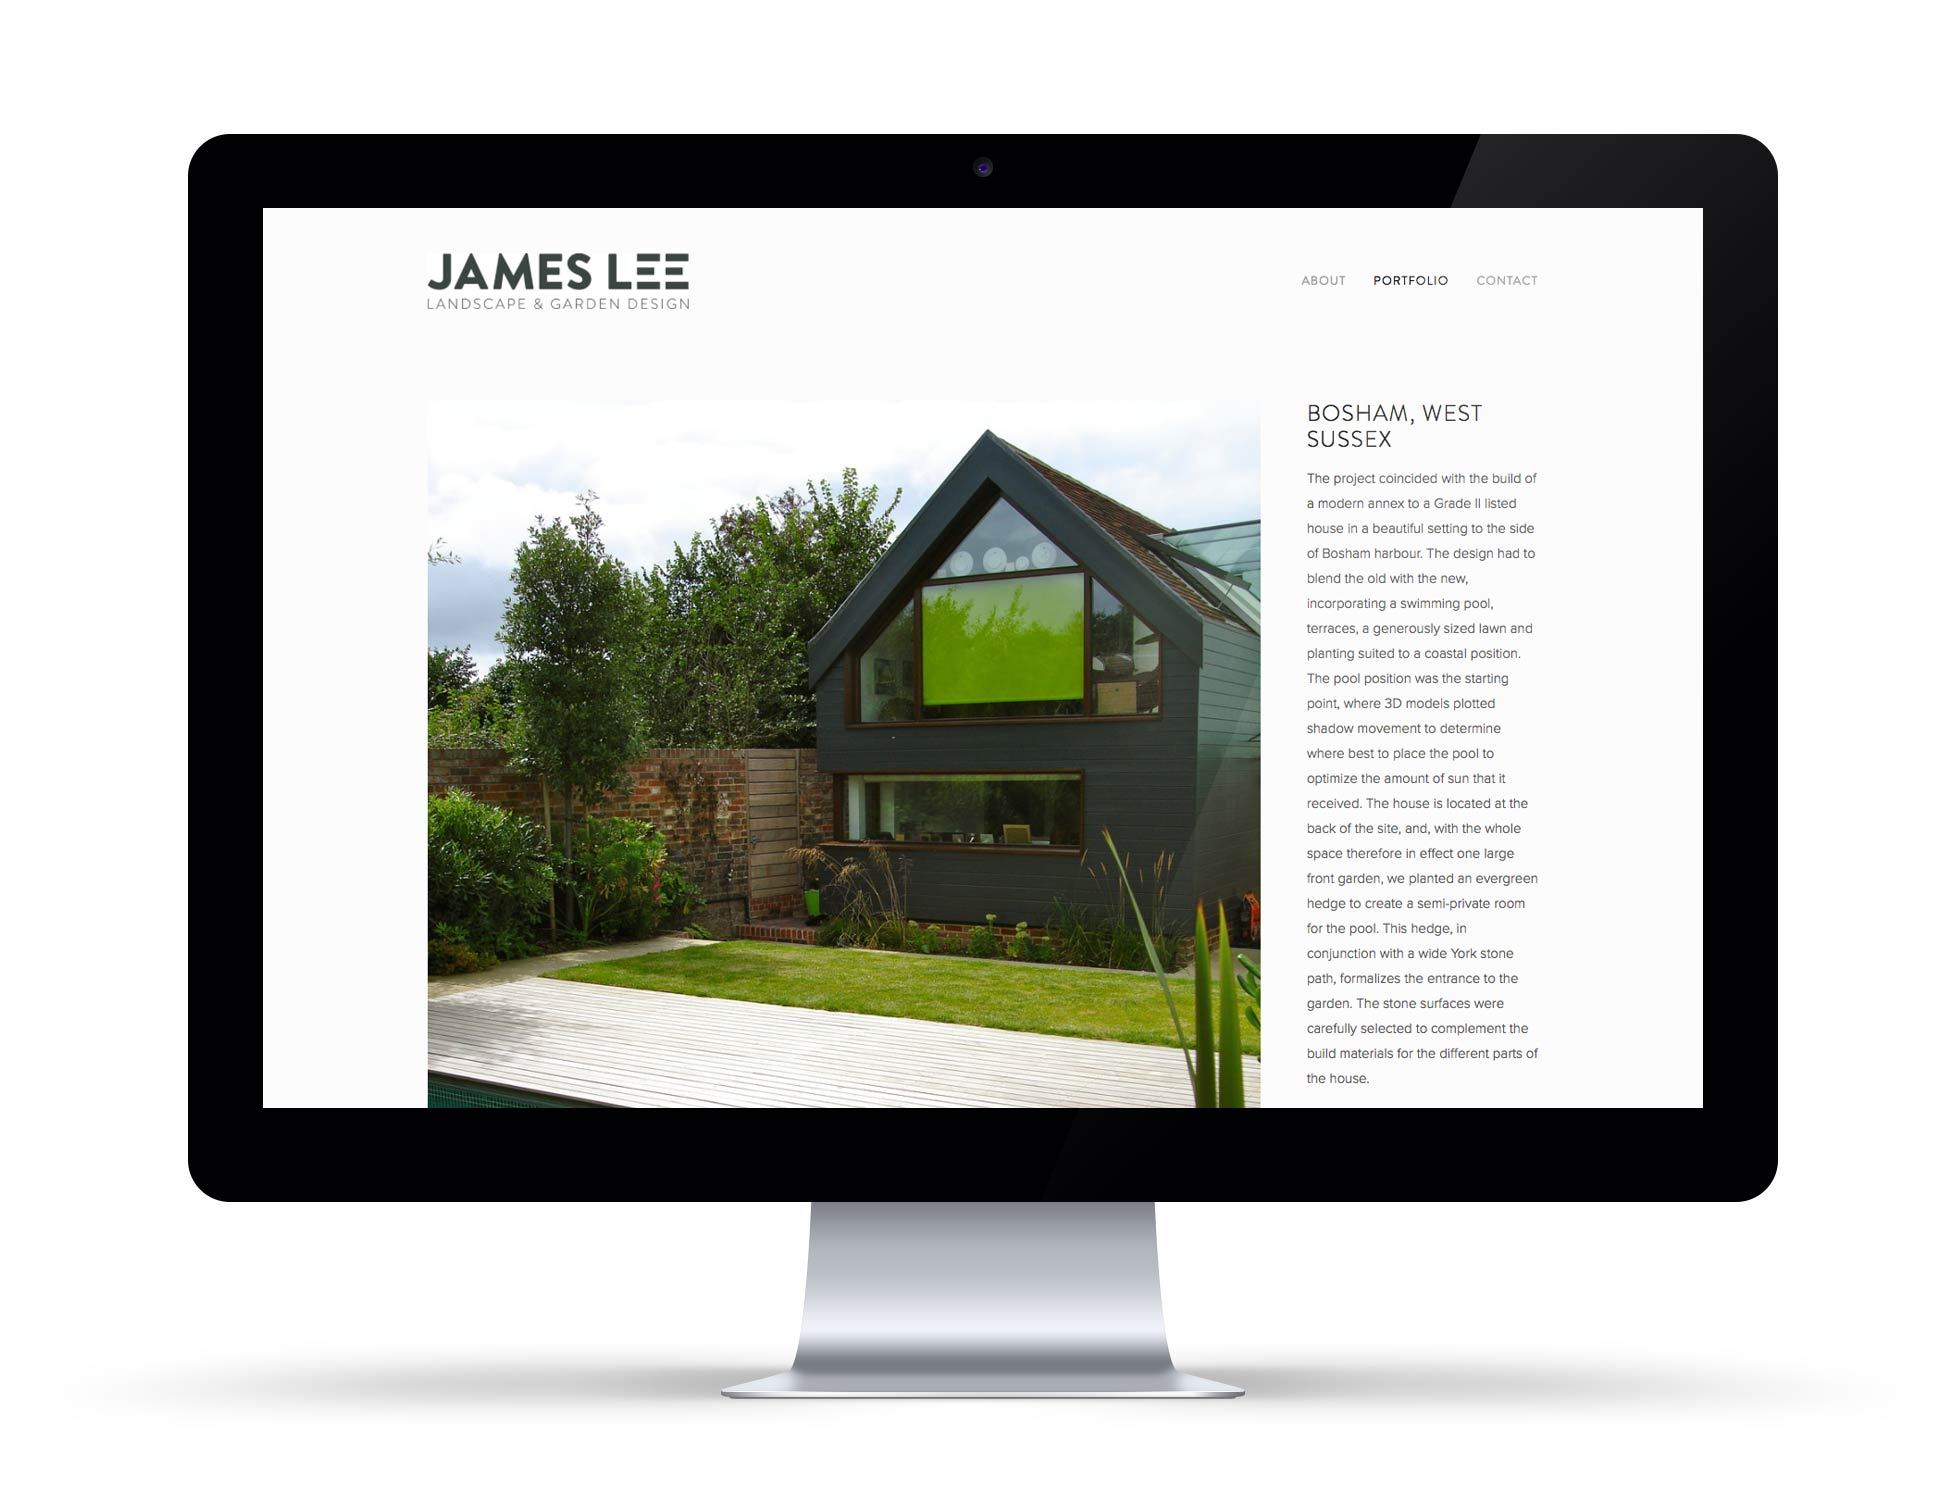 James Lee Website